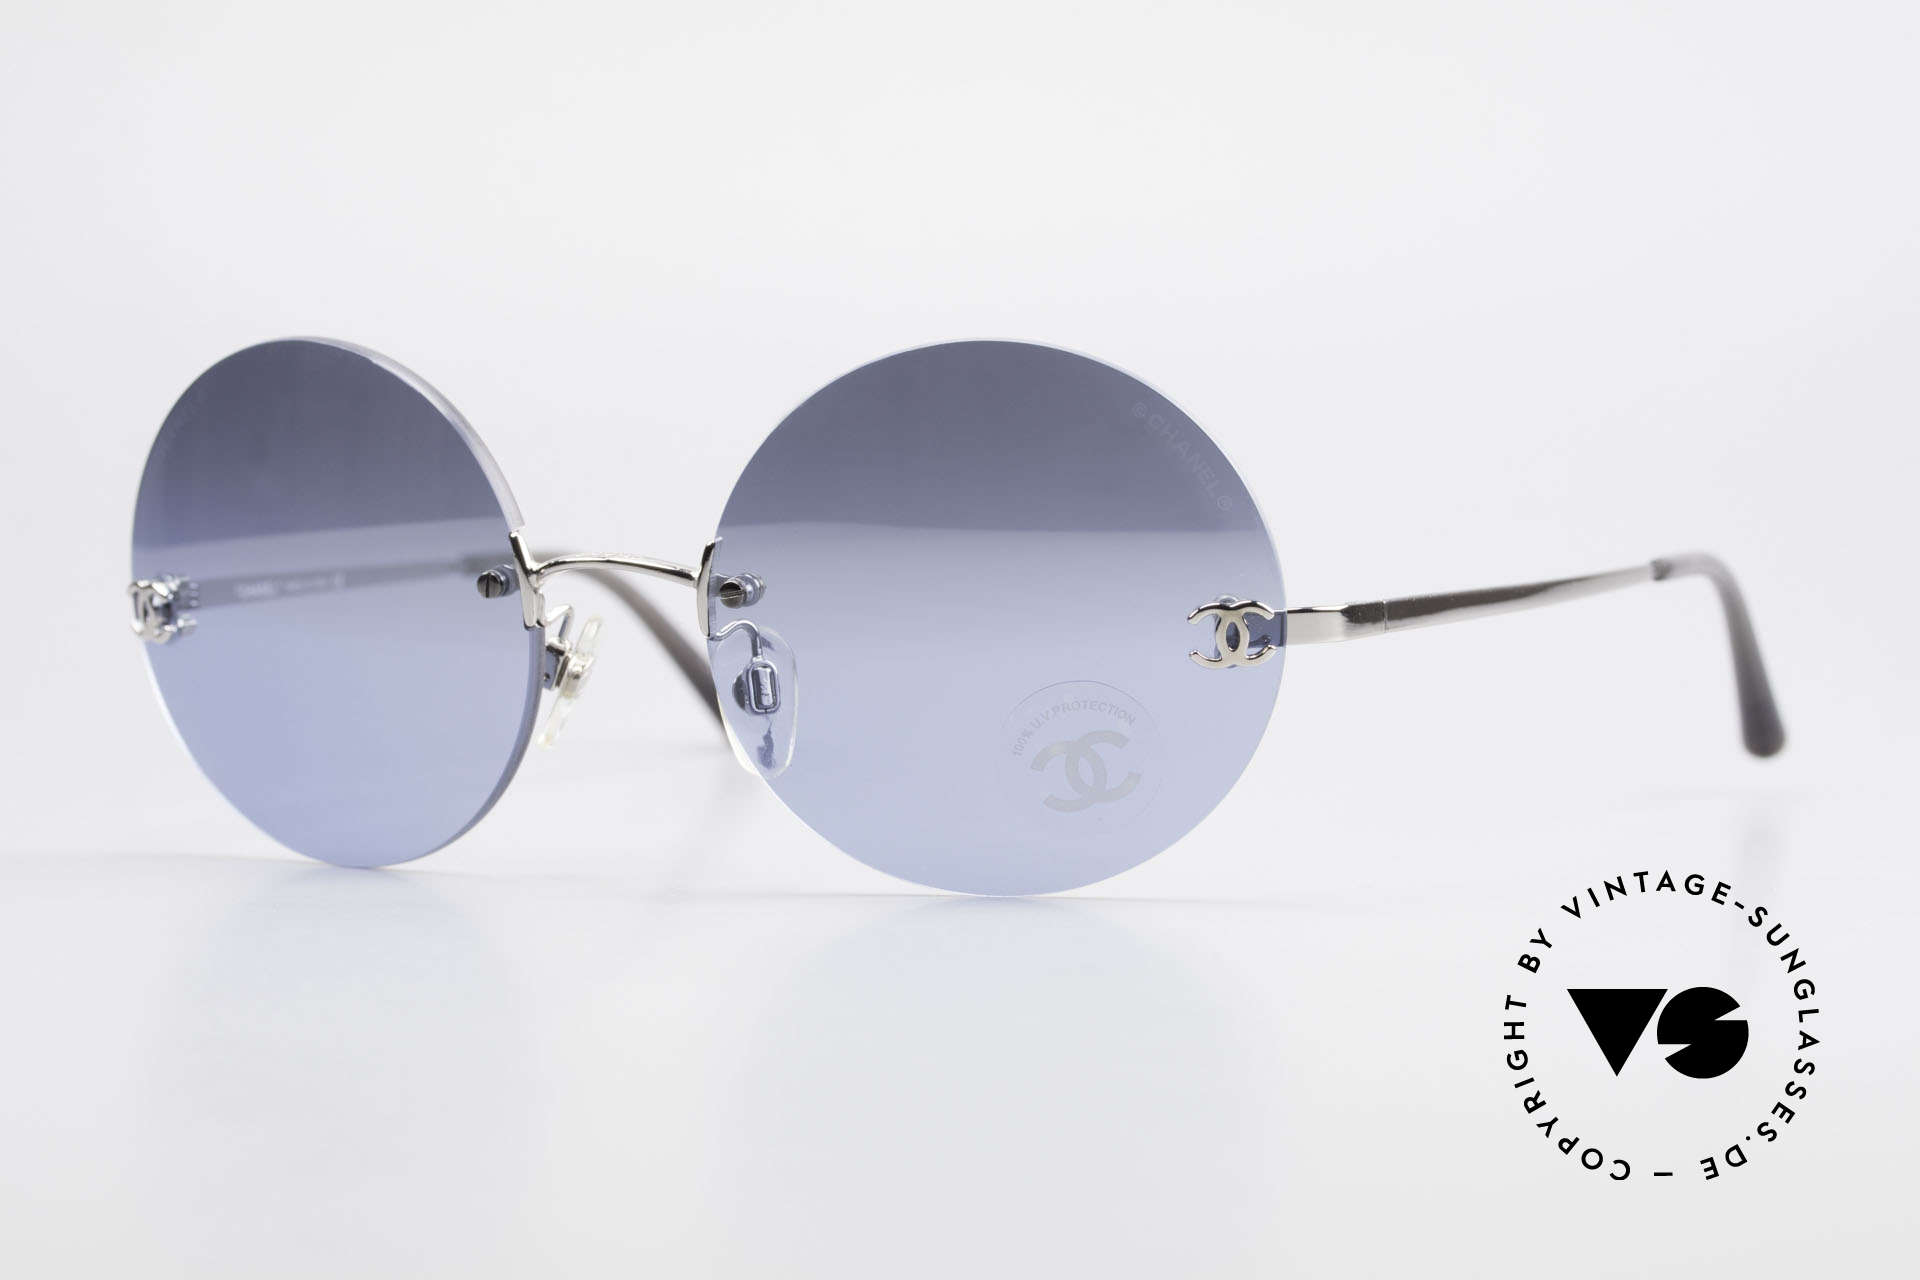 Chanel 4056 Round Luxury Shades Rimless, rare CHANEL shades, model 4056 in Medium size 53-18, Made for Men and Women